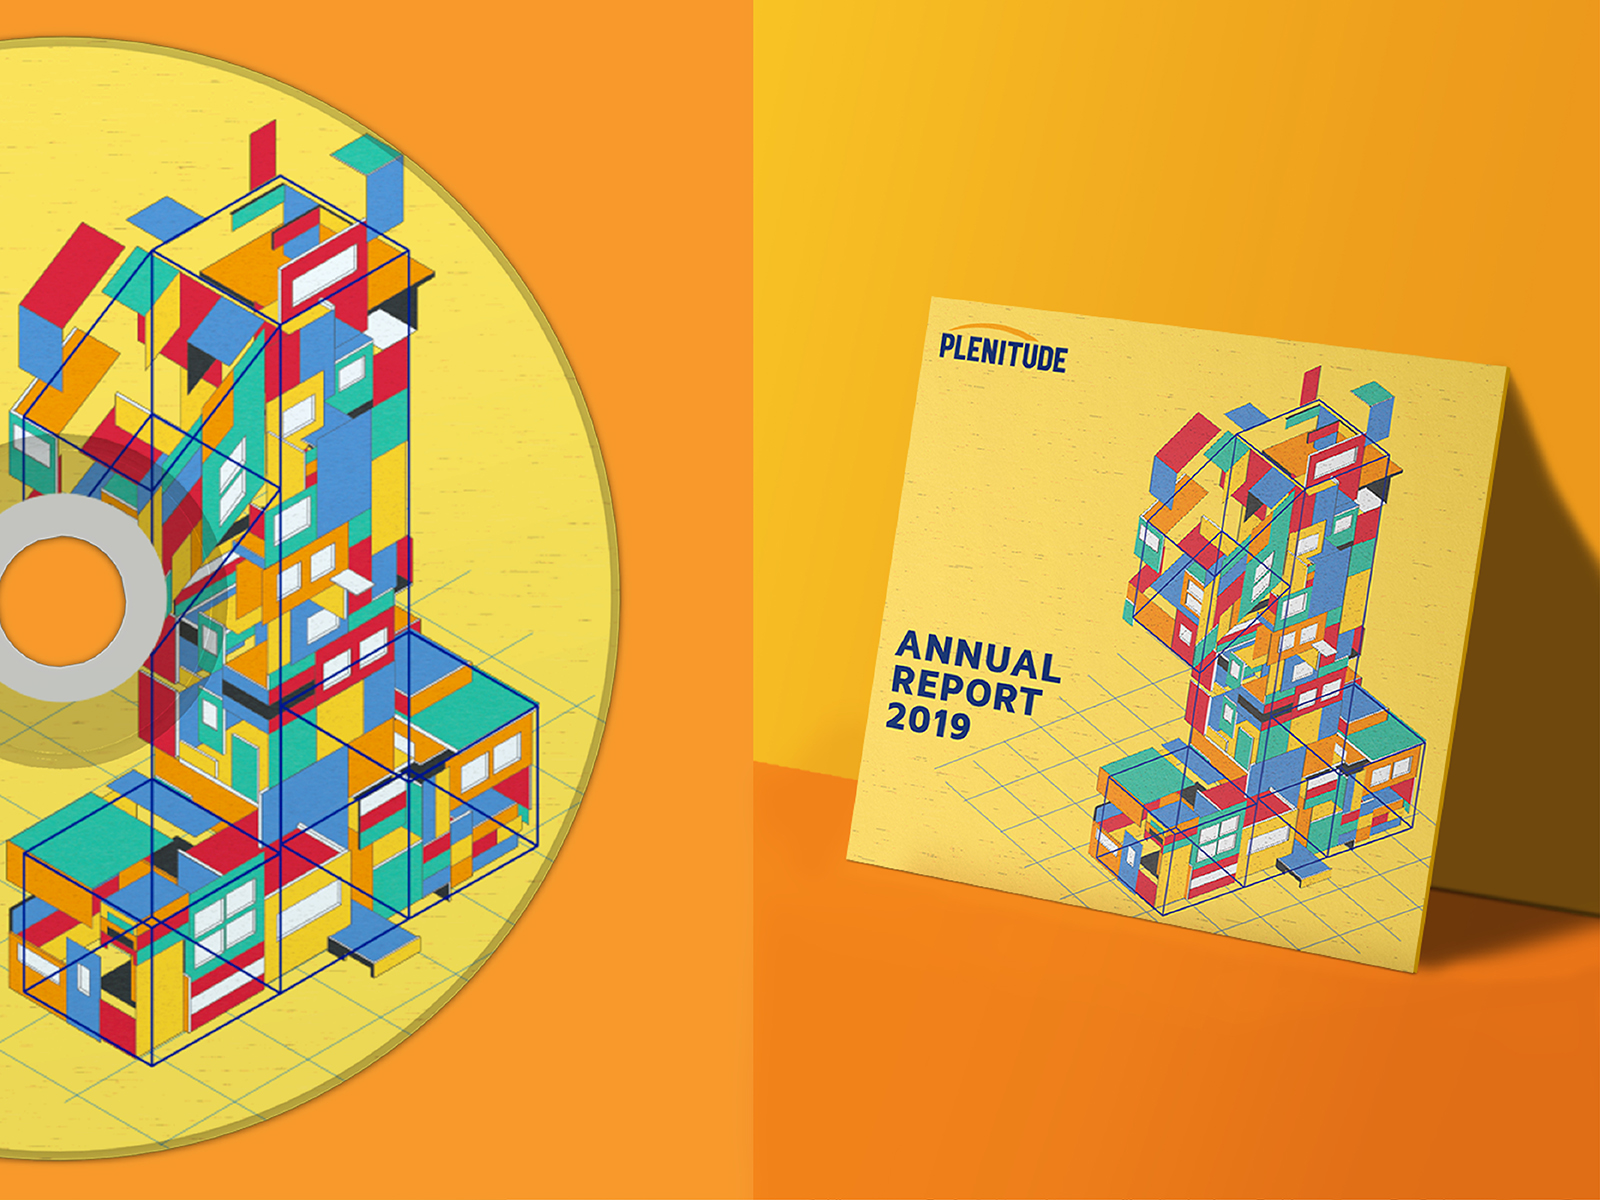 Plenitude annual report 2019 cover design forming number one to signify being the best and applied to cd sticker